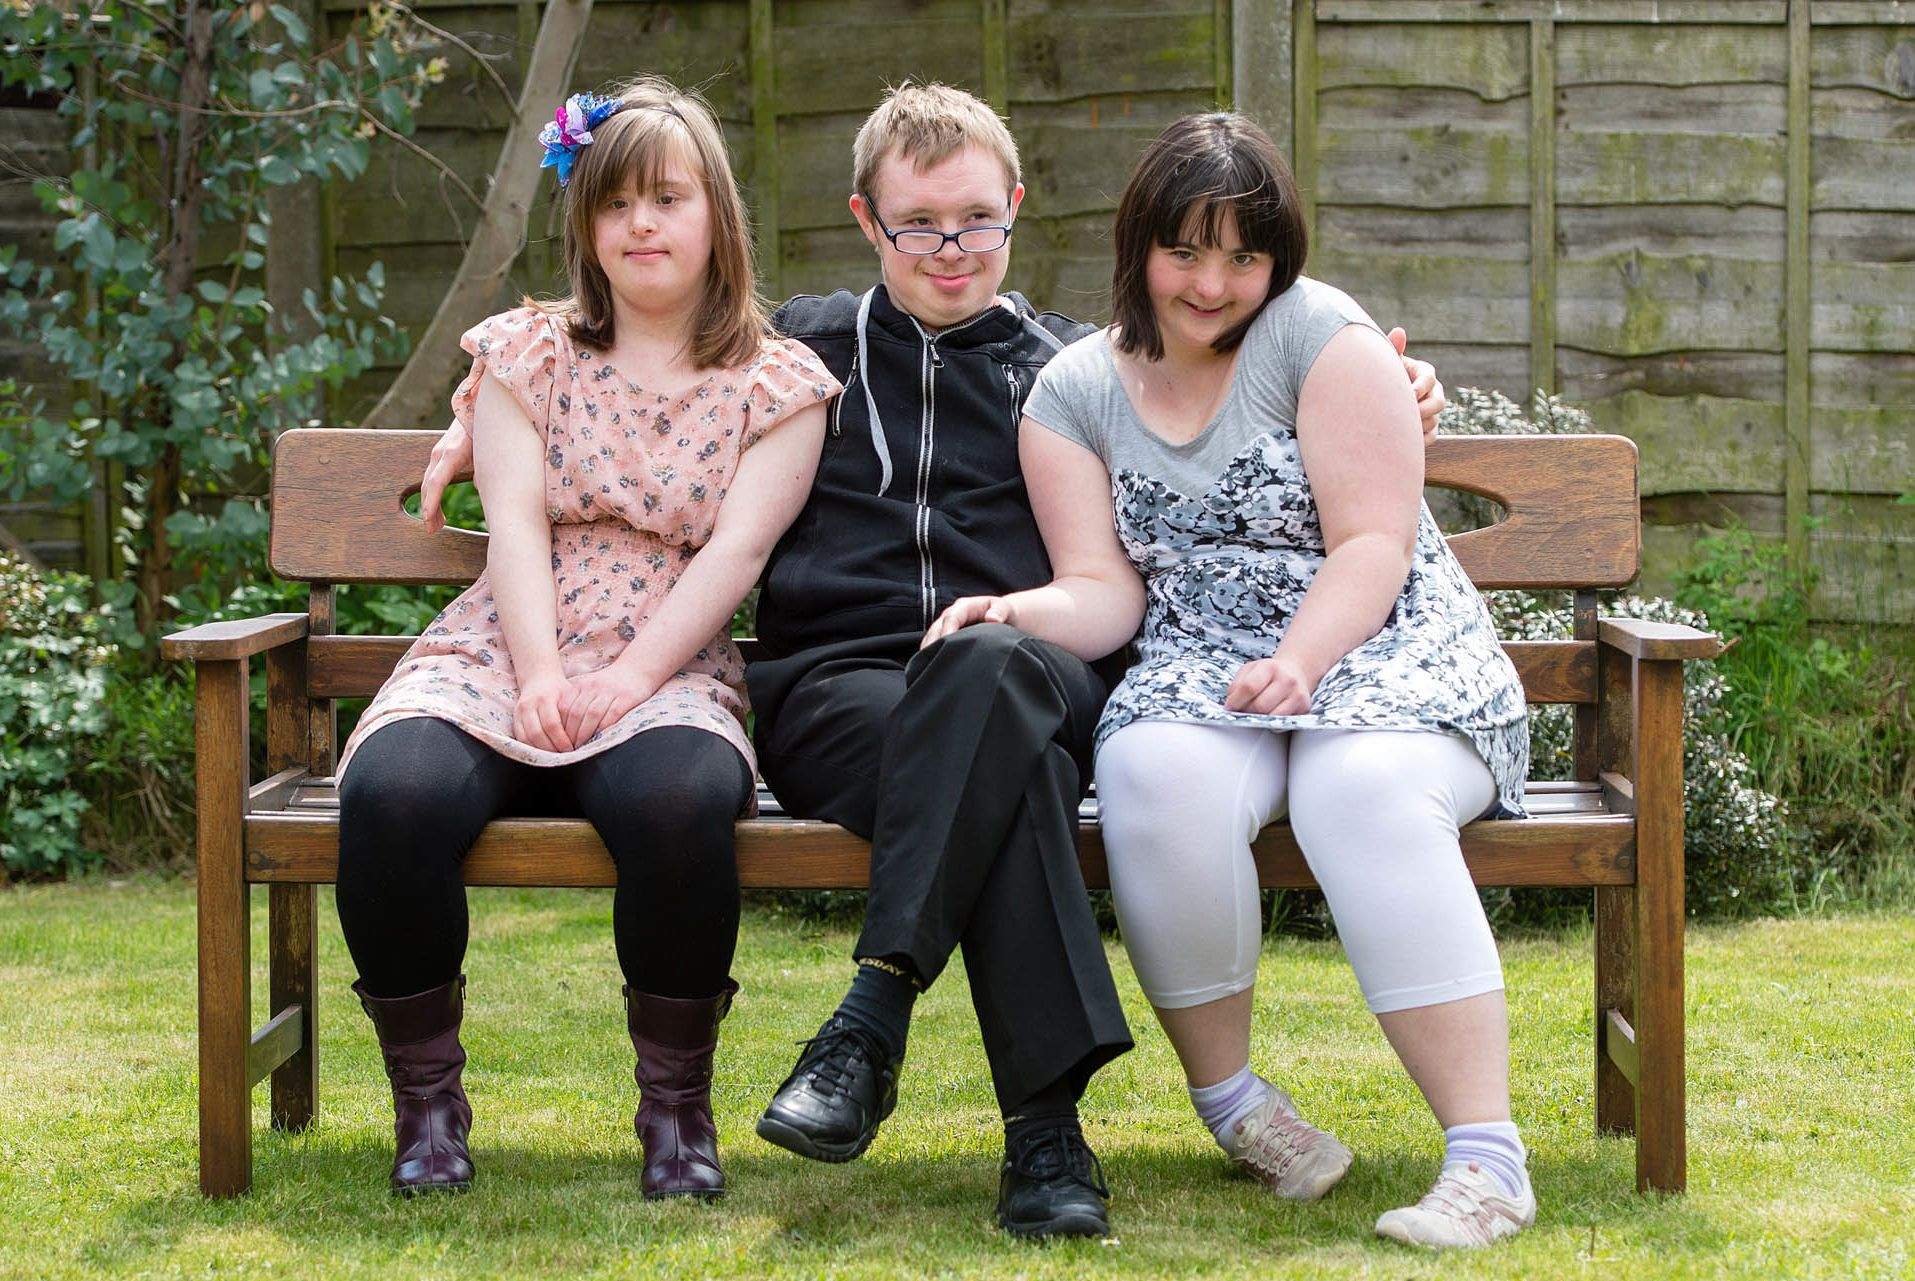 Two young women and one young man sat on a bench in their garden